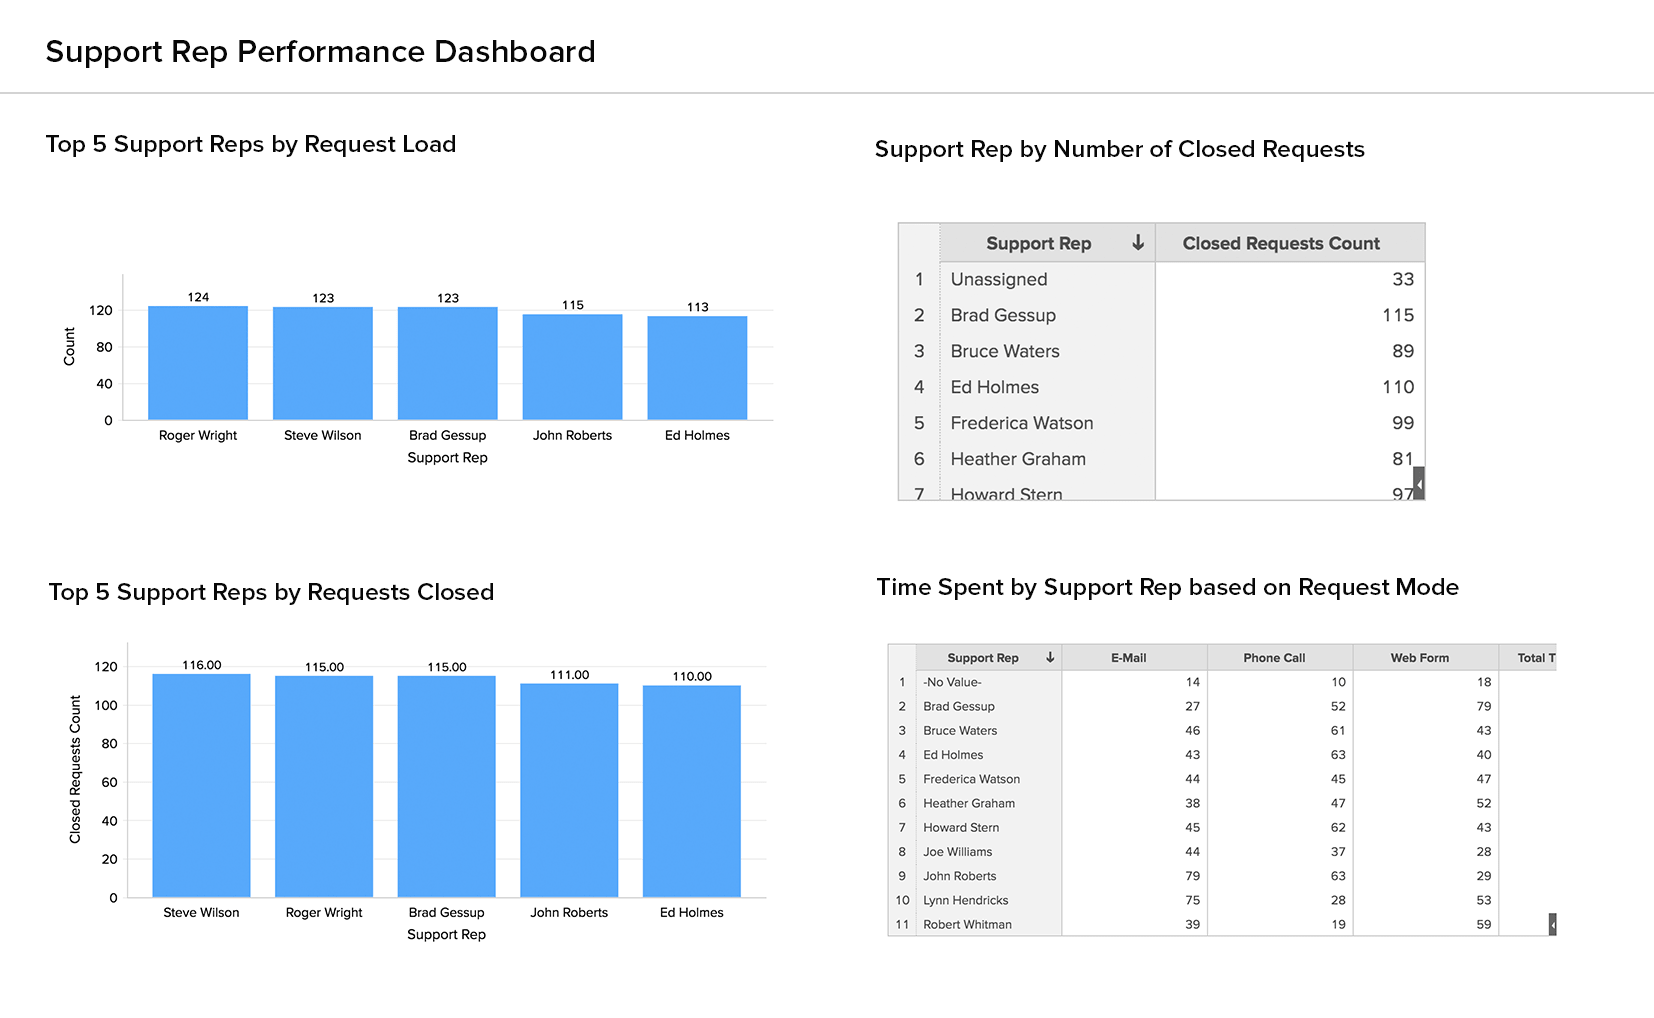 Support Rep Performance